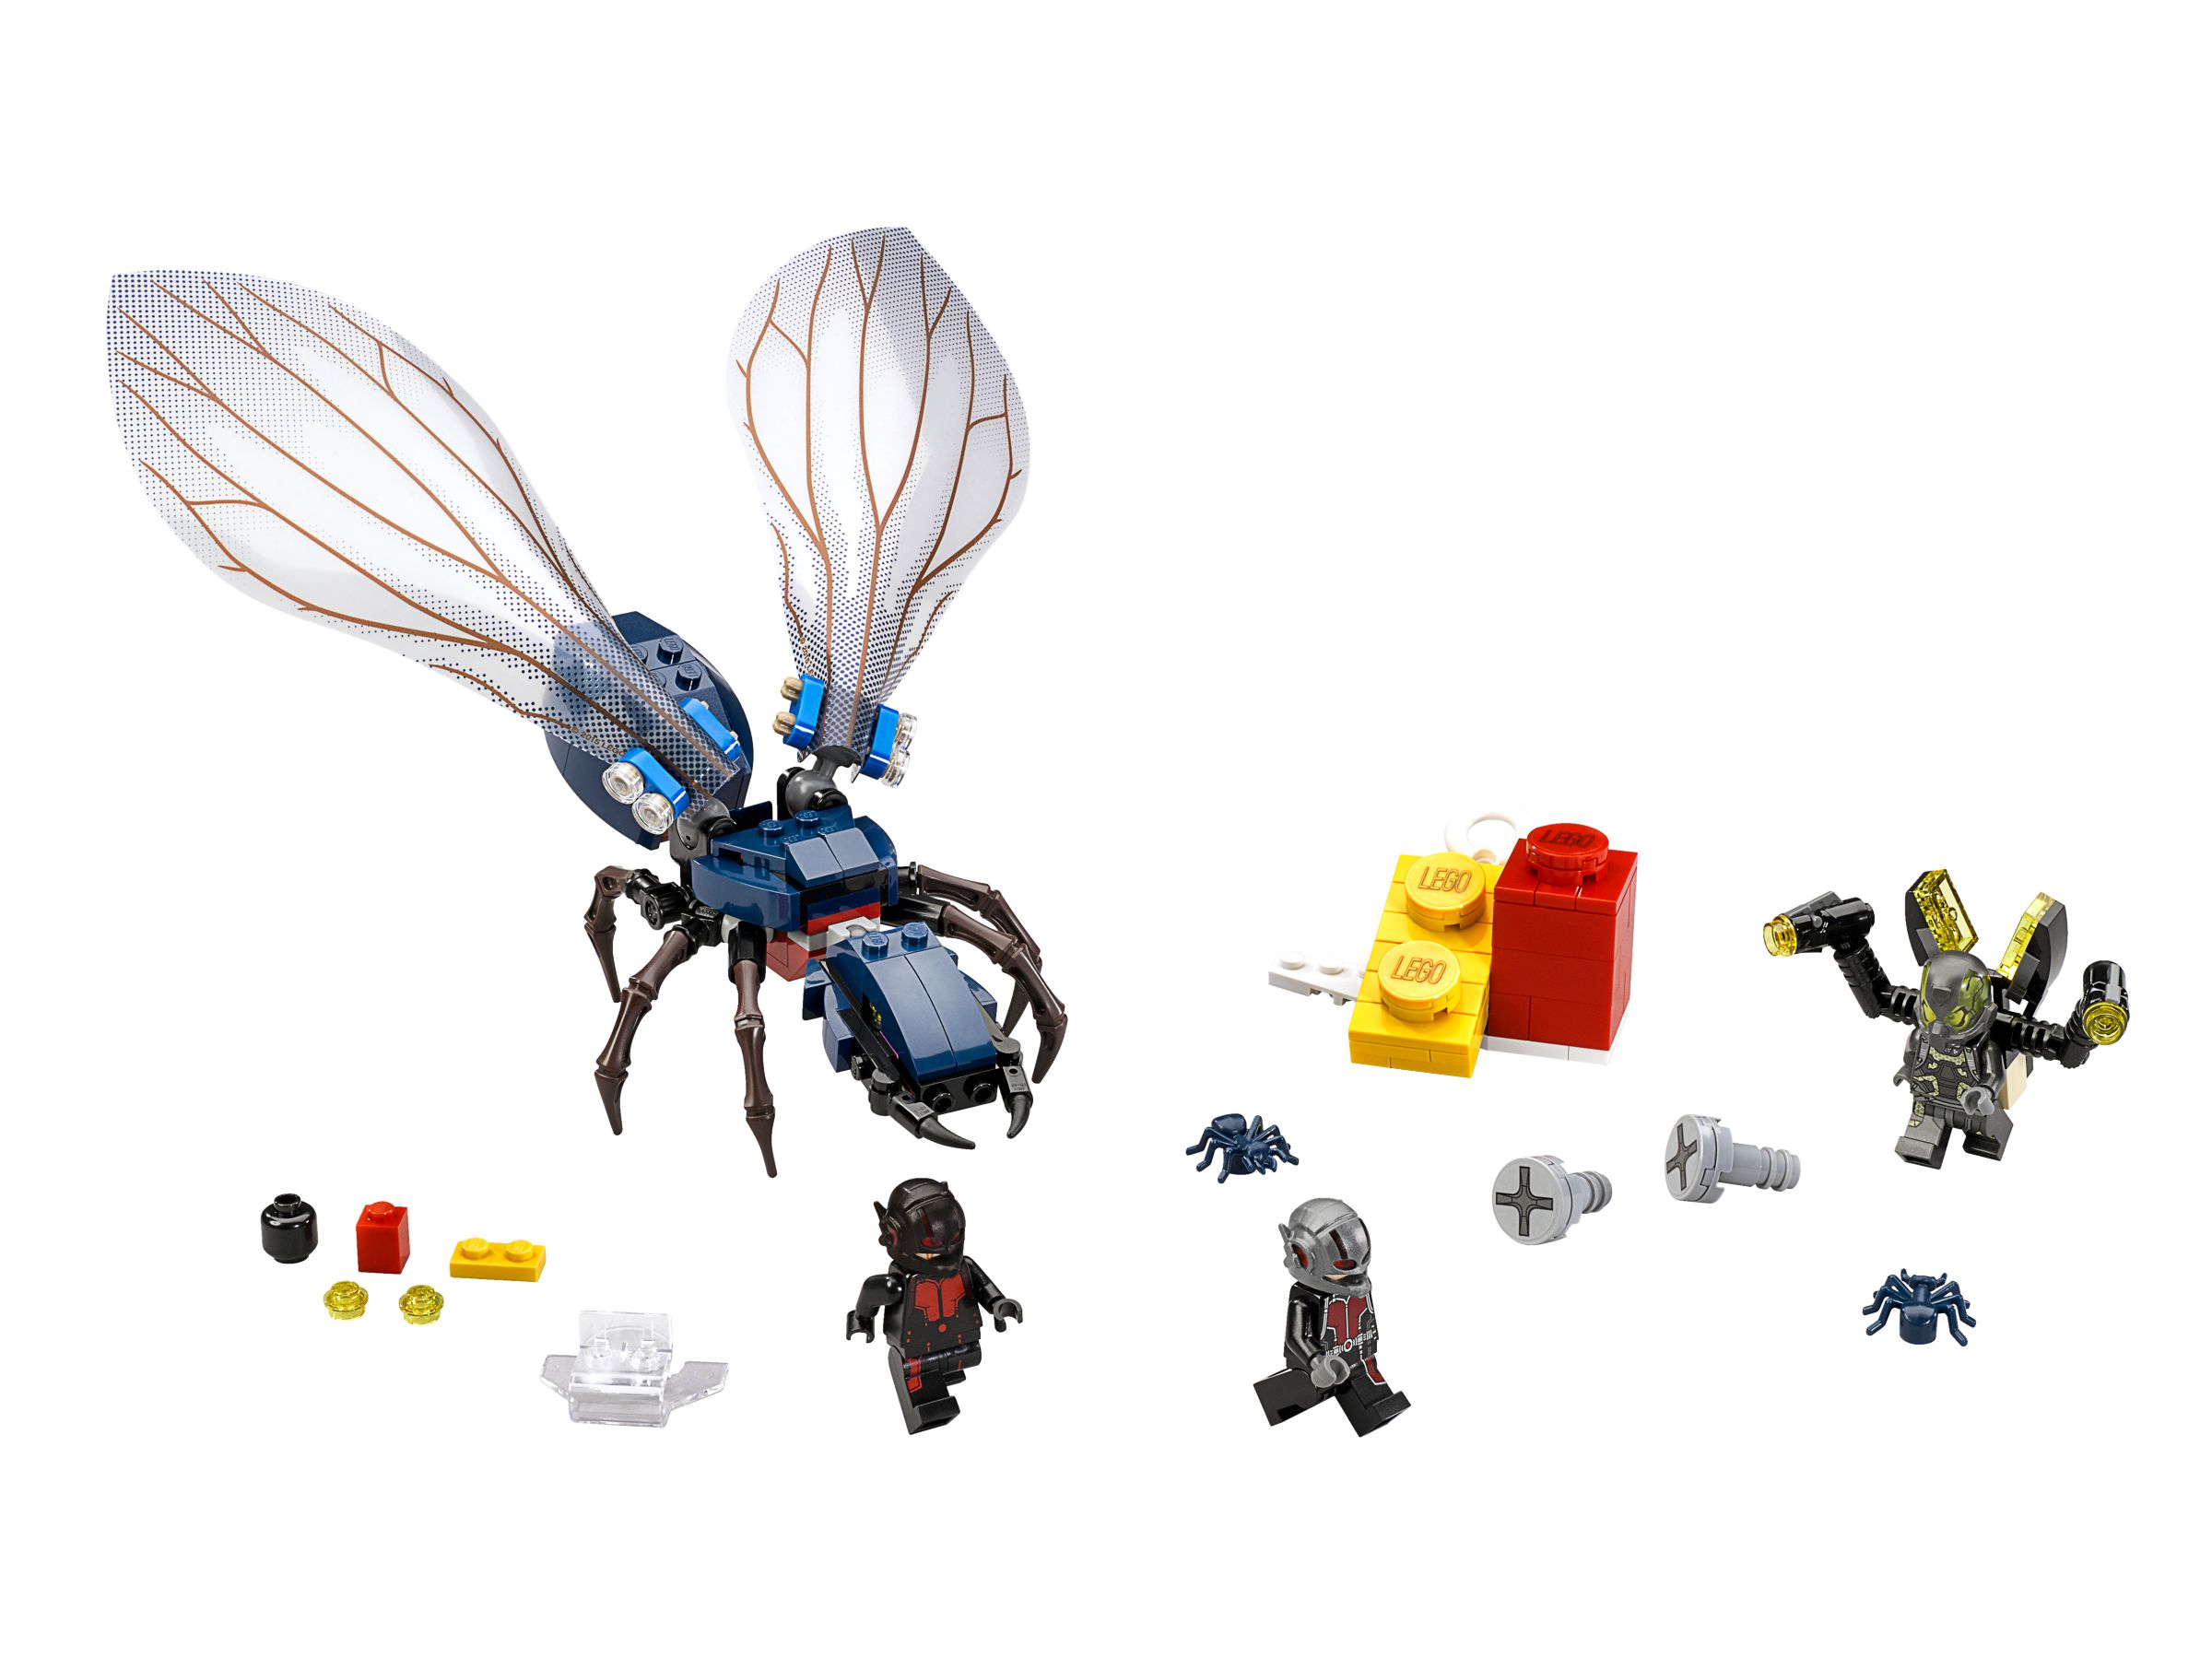 LEGO Super Heroes 76039 Ant-Man Das finale Duell LEGO_76039.jpg